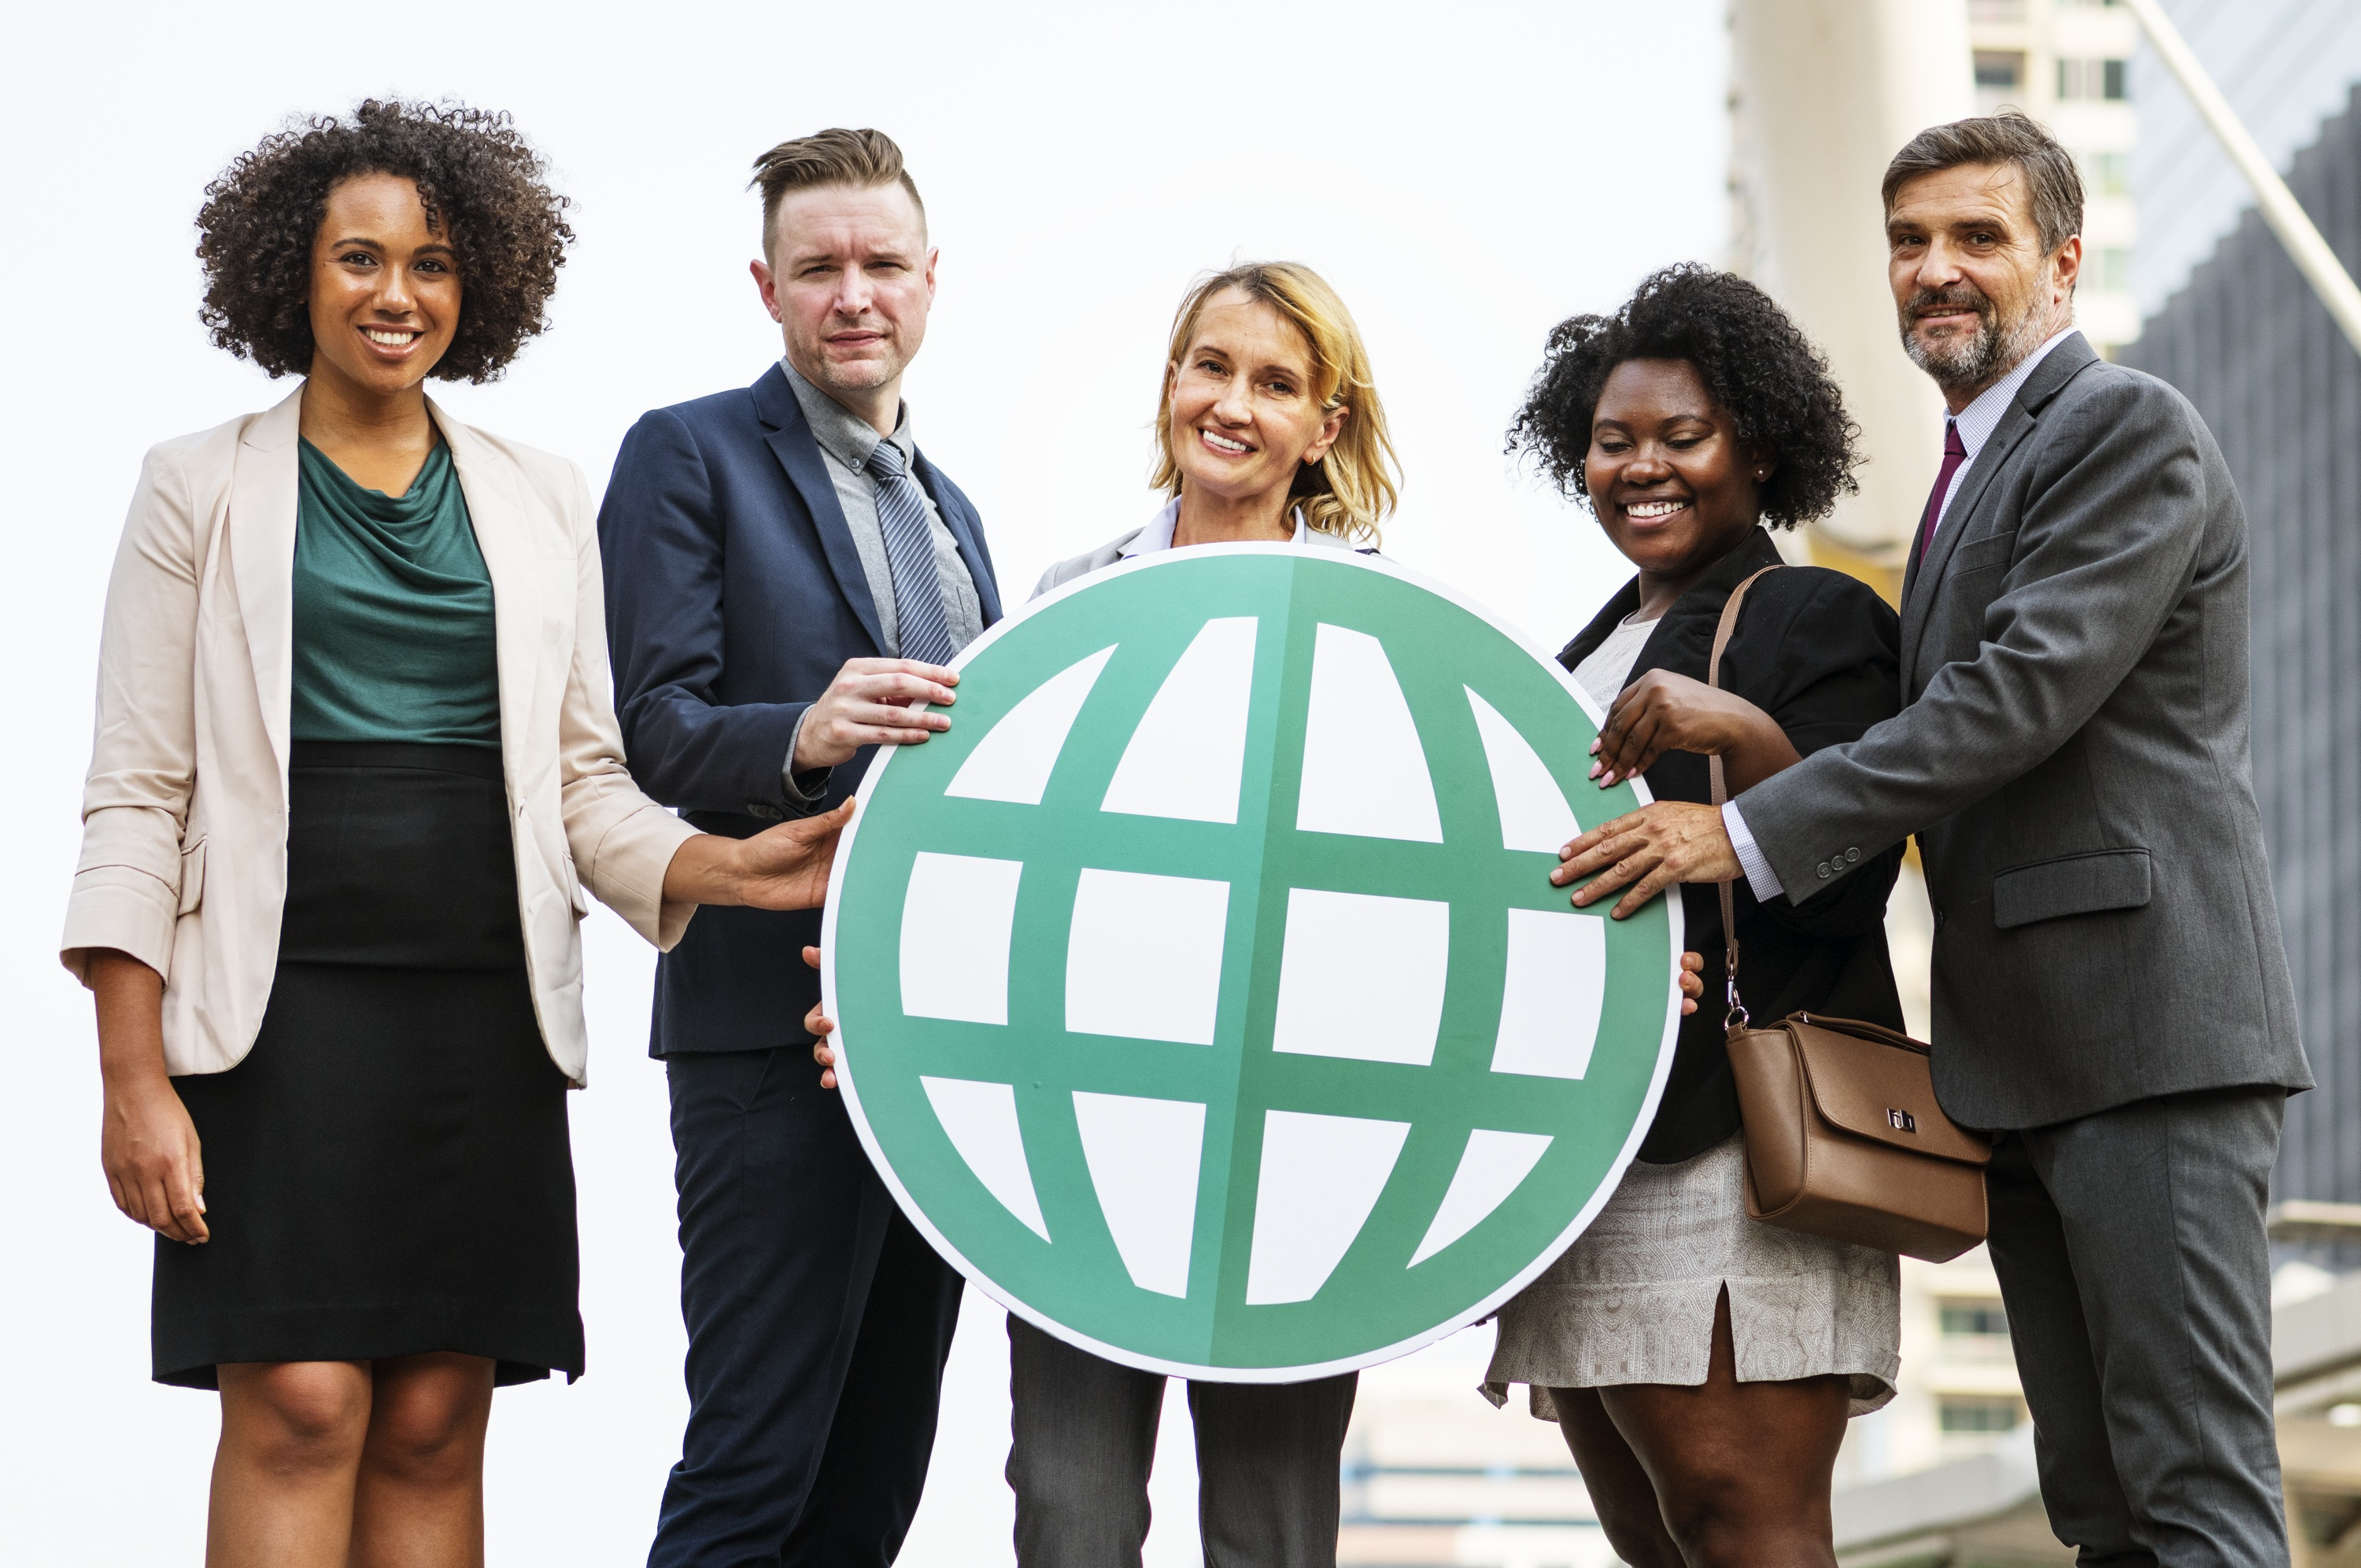 Group Holding a world cutout